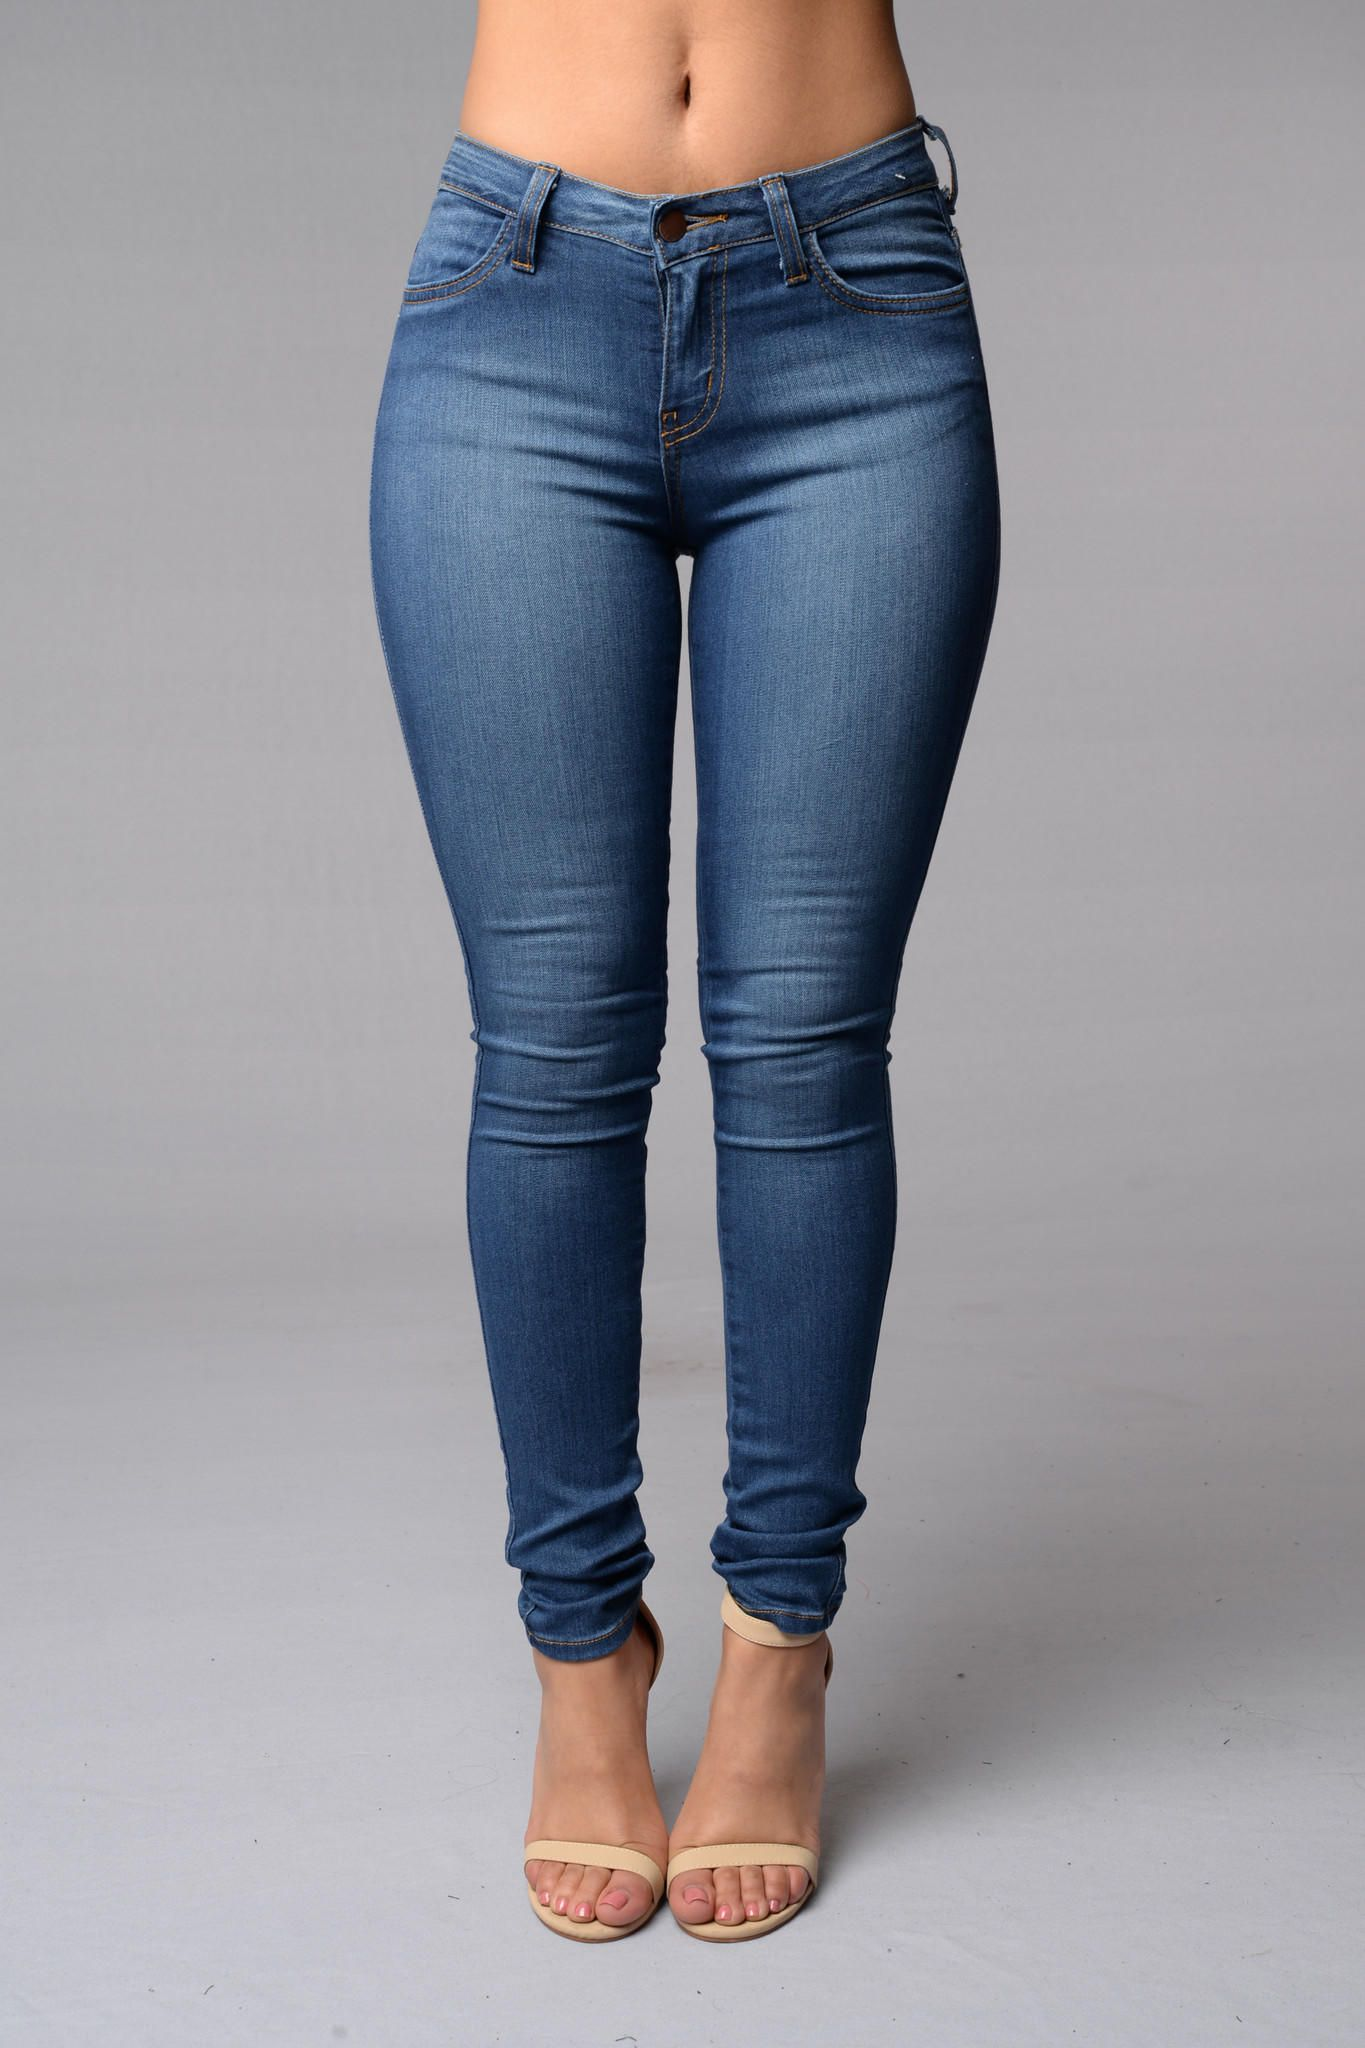 37313c34d66e Classic Mid Rise Skinny Jeans - Medium Blue from Fashion Nova. Saved to .  Shop more products from Fashion Nova on Wanelo.